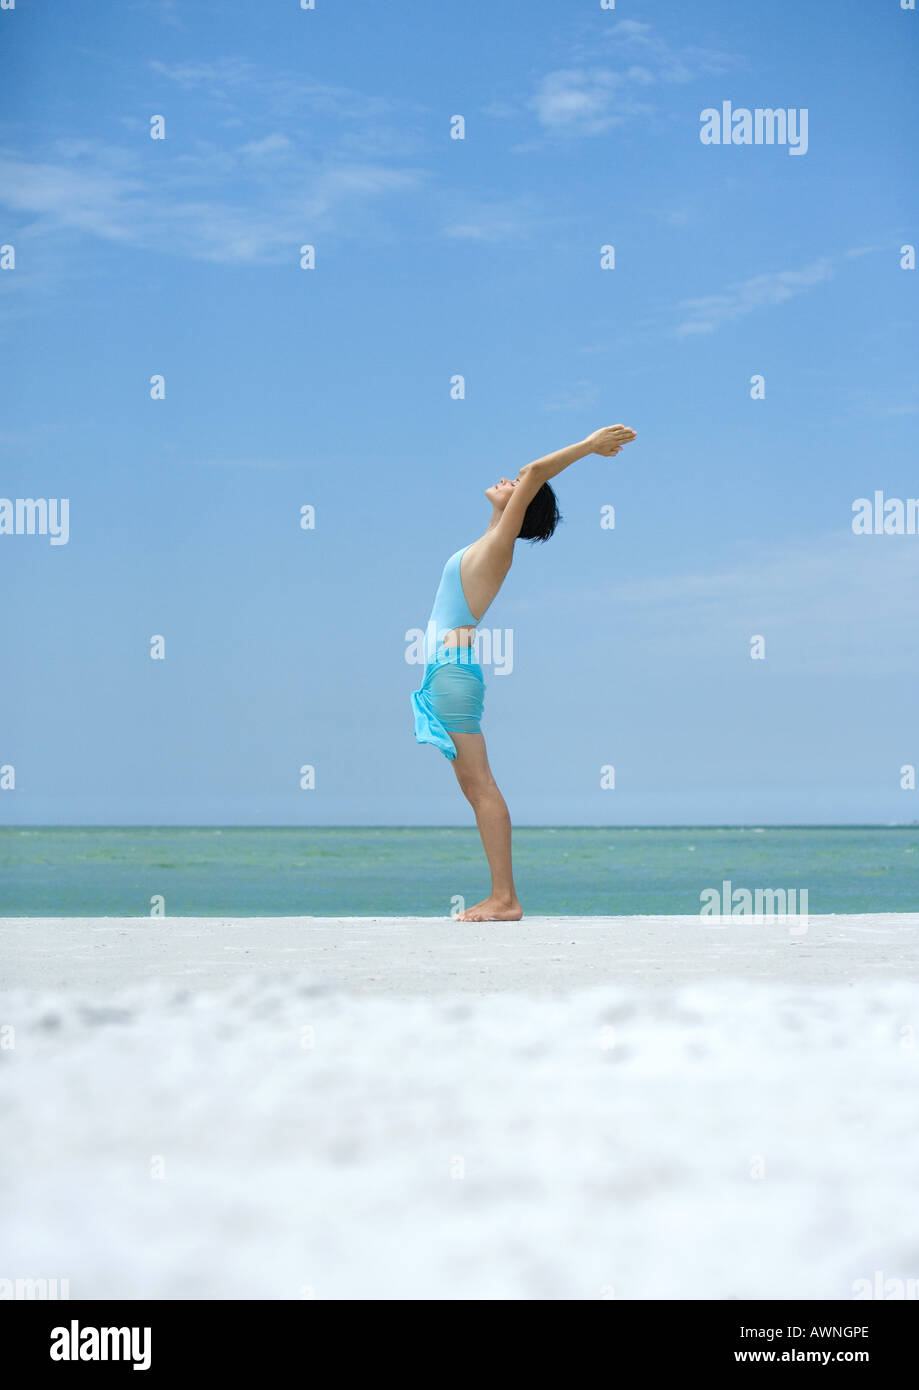 Woman performing sun salutation on beach - Stock Image